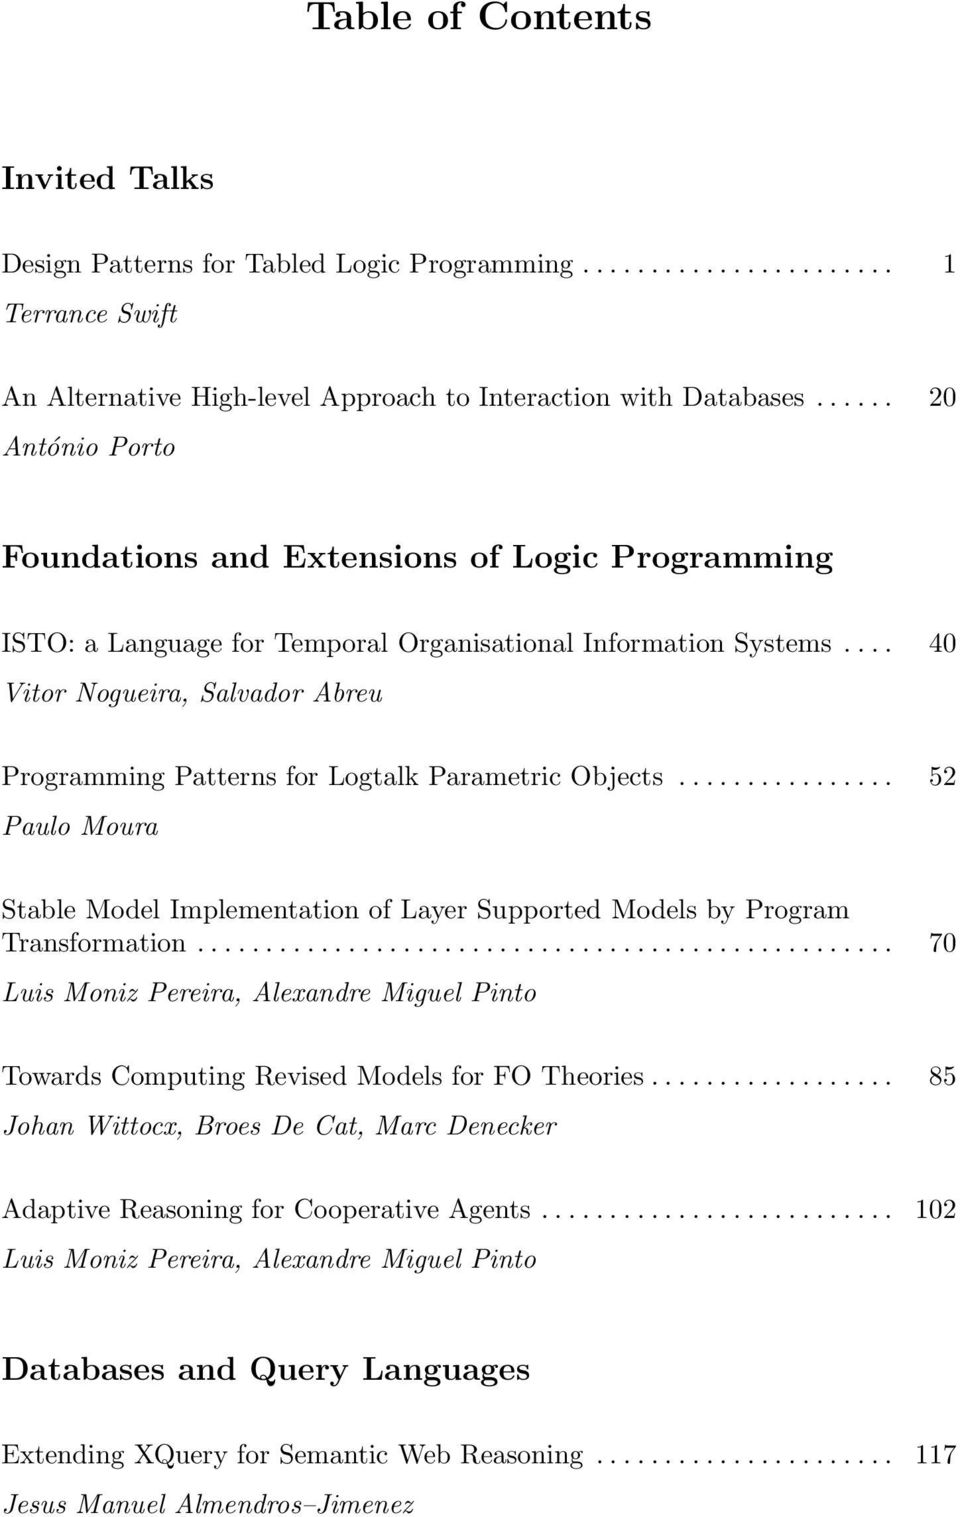 ... 40 Vitor Nogueira, Salvador Abreu Programming Patterns for Logtalk Parametric Objects................ 52 Paulo Moura Stable Model Implementation of Layer Supported Models by Program Transformation.